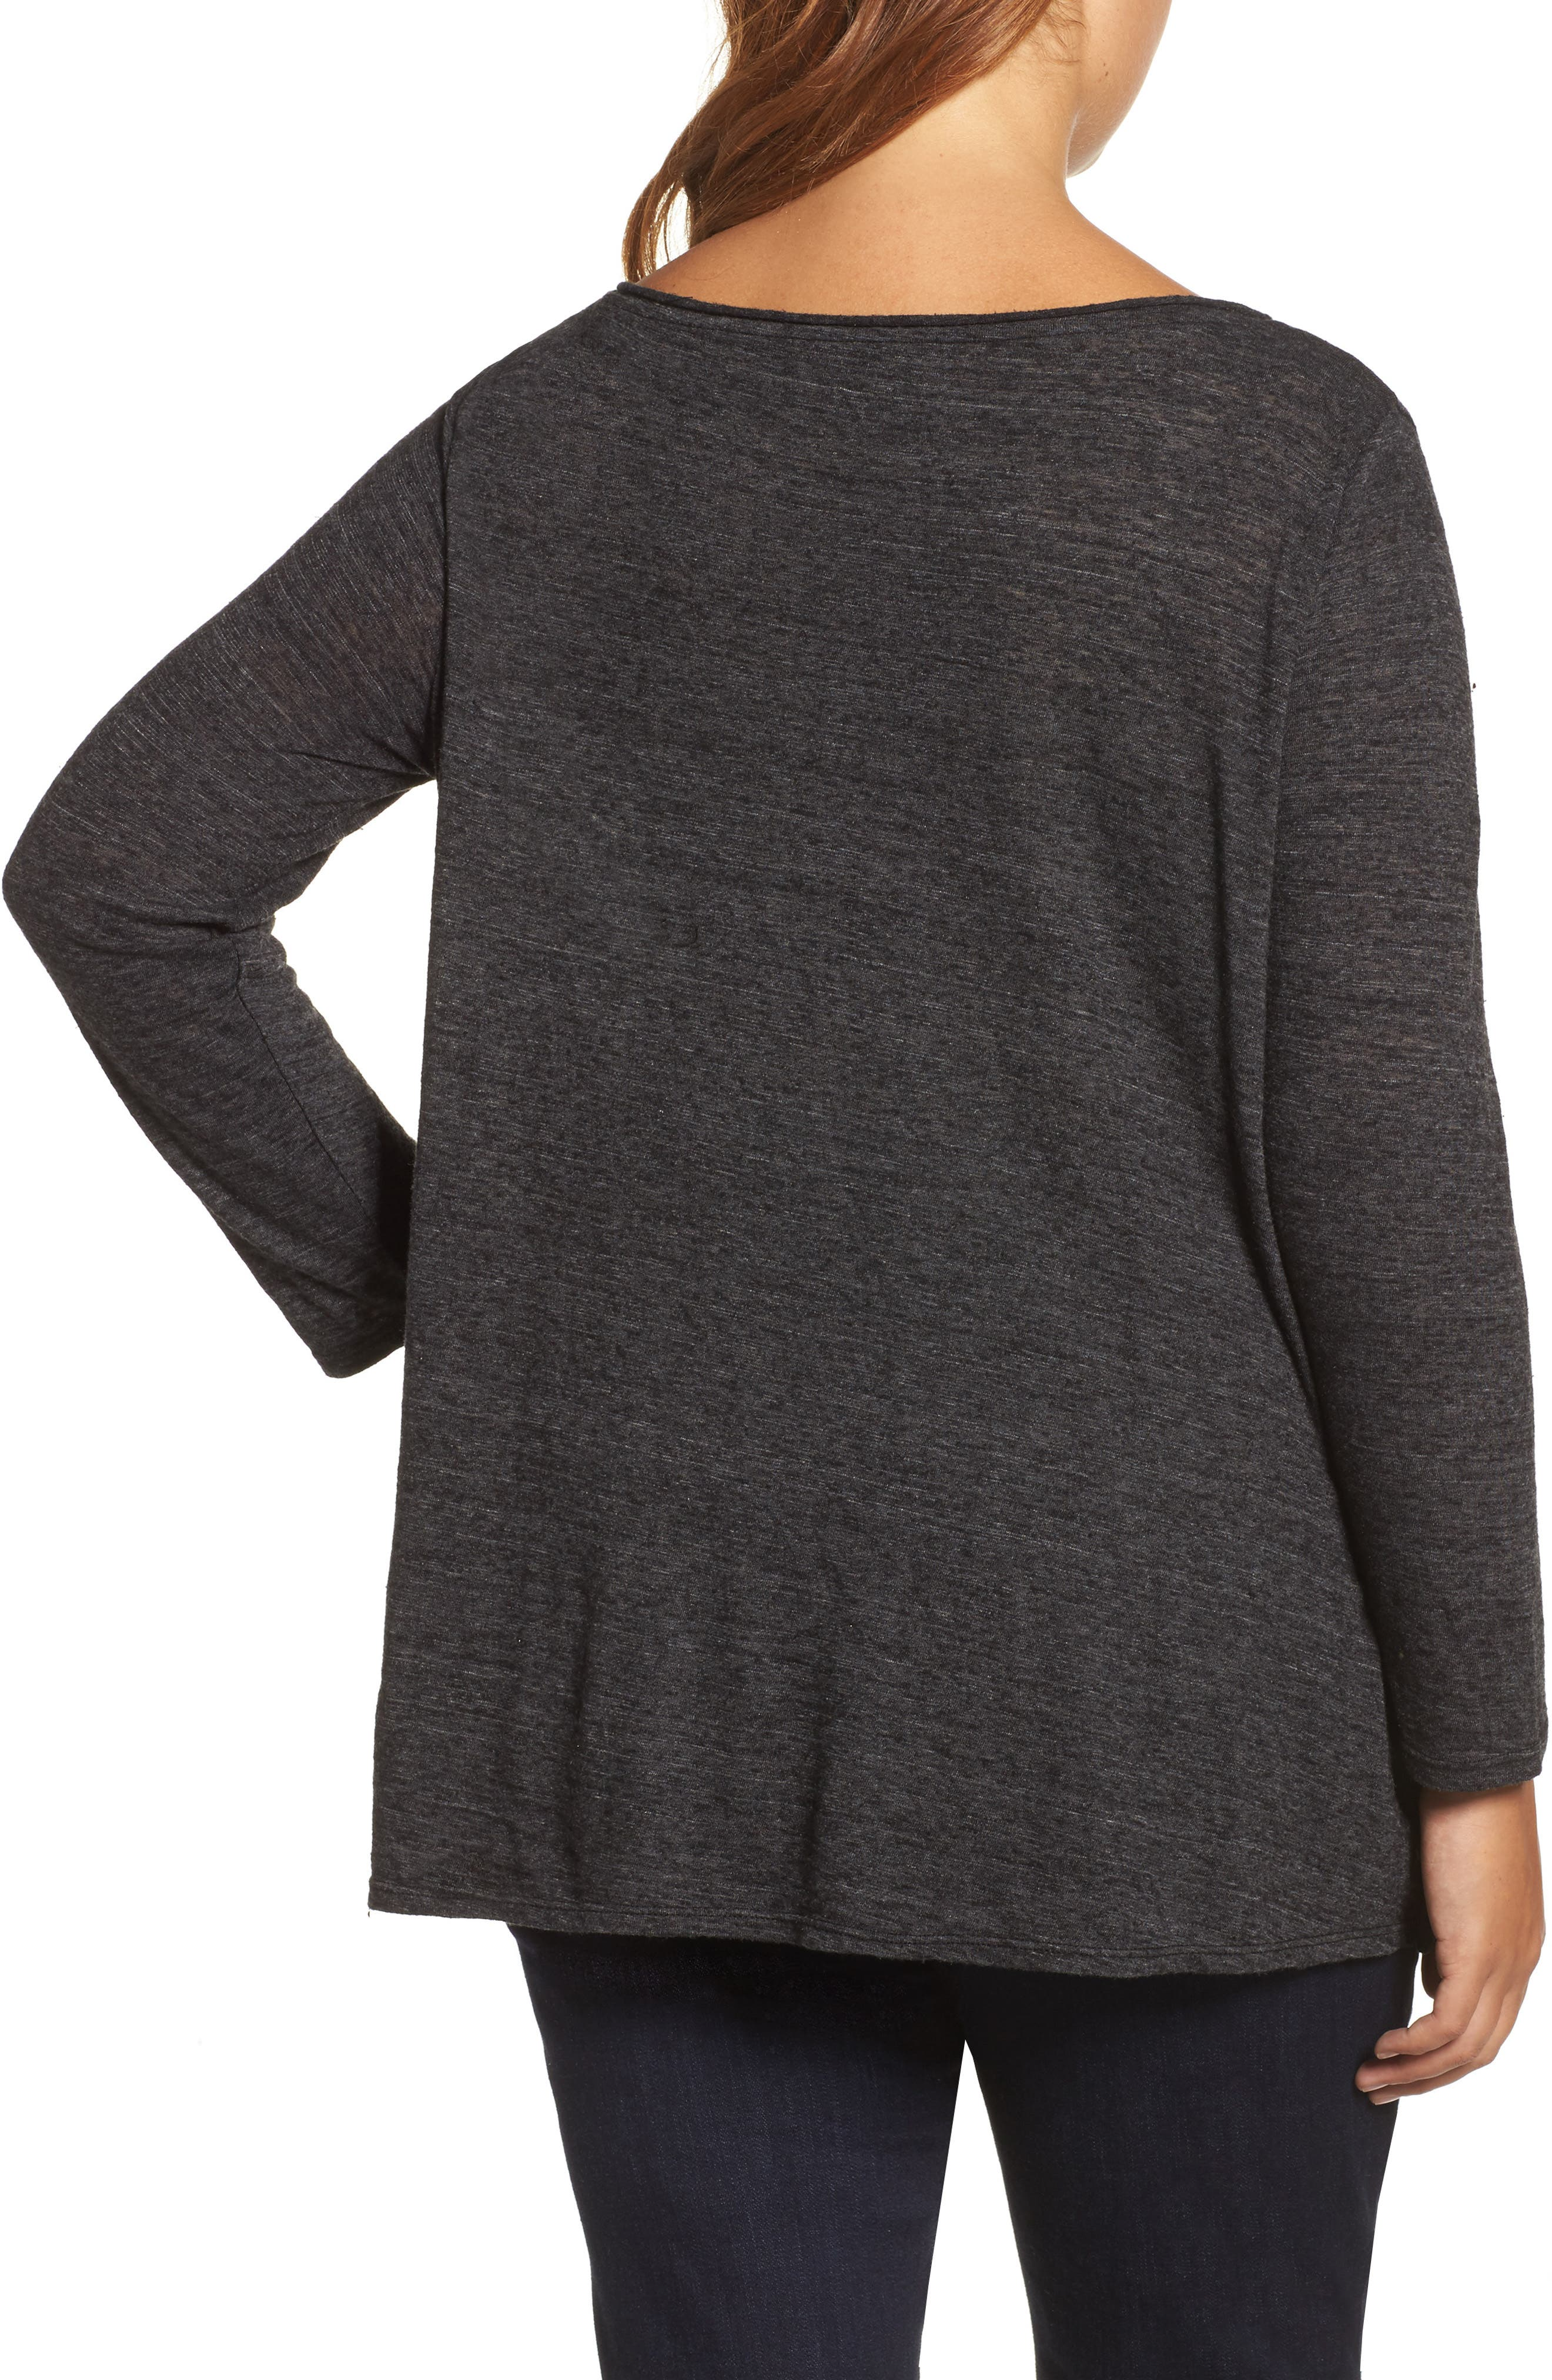 Nepps Swing Jersey Tunic,                             Alternate thumbnail 2, color,                             001